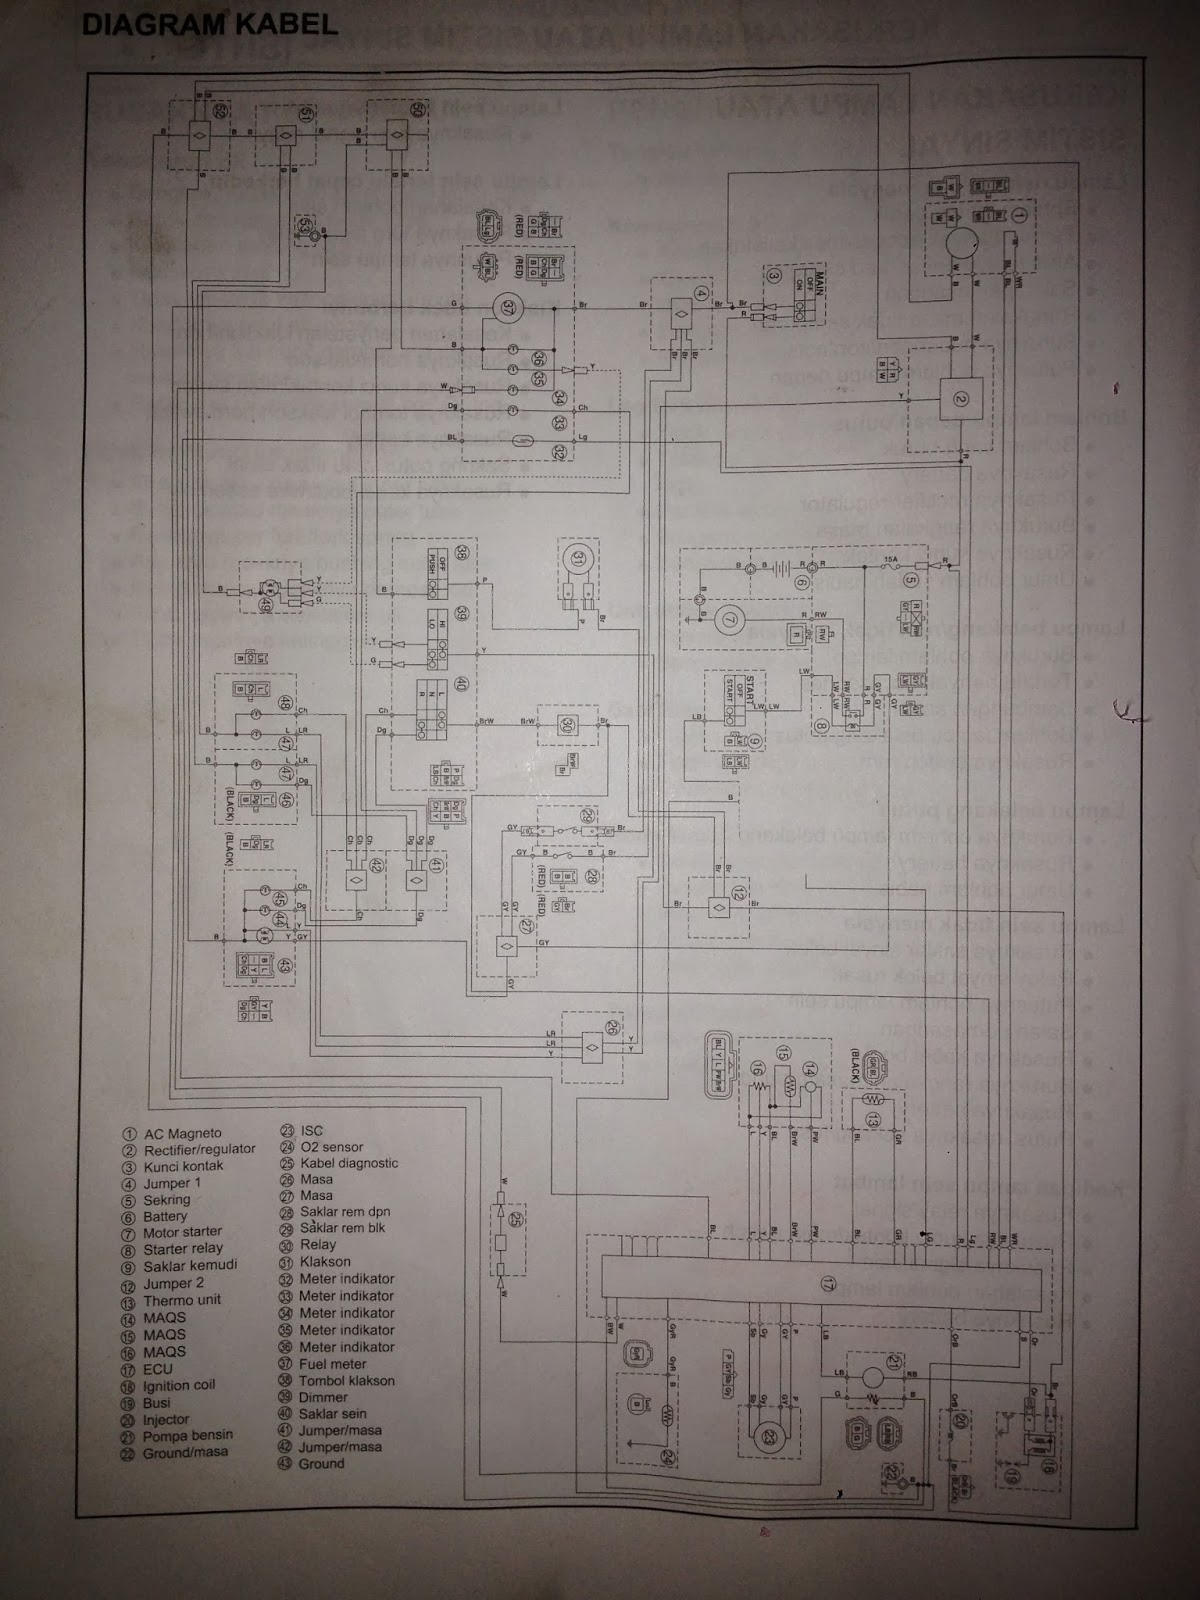 hight resolution of bengkel motor diagram kelistrikan soul gt atau mio j wiring diagram mio j diagram kelistrikan soul